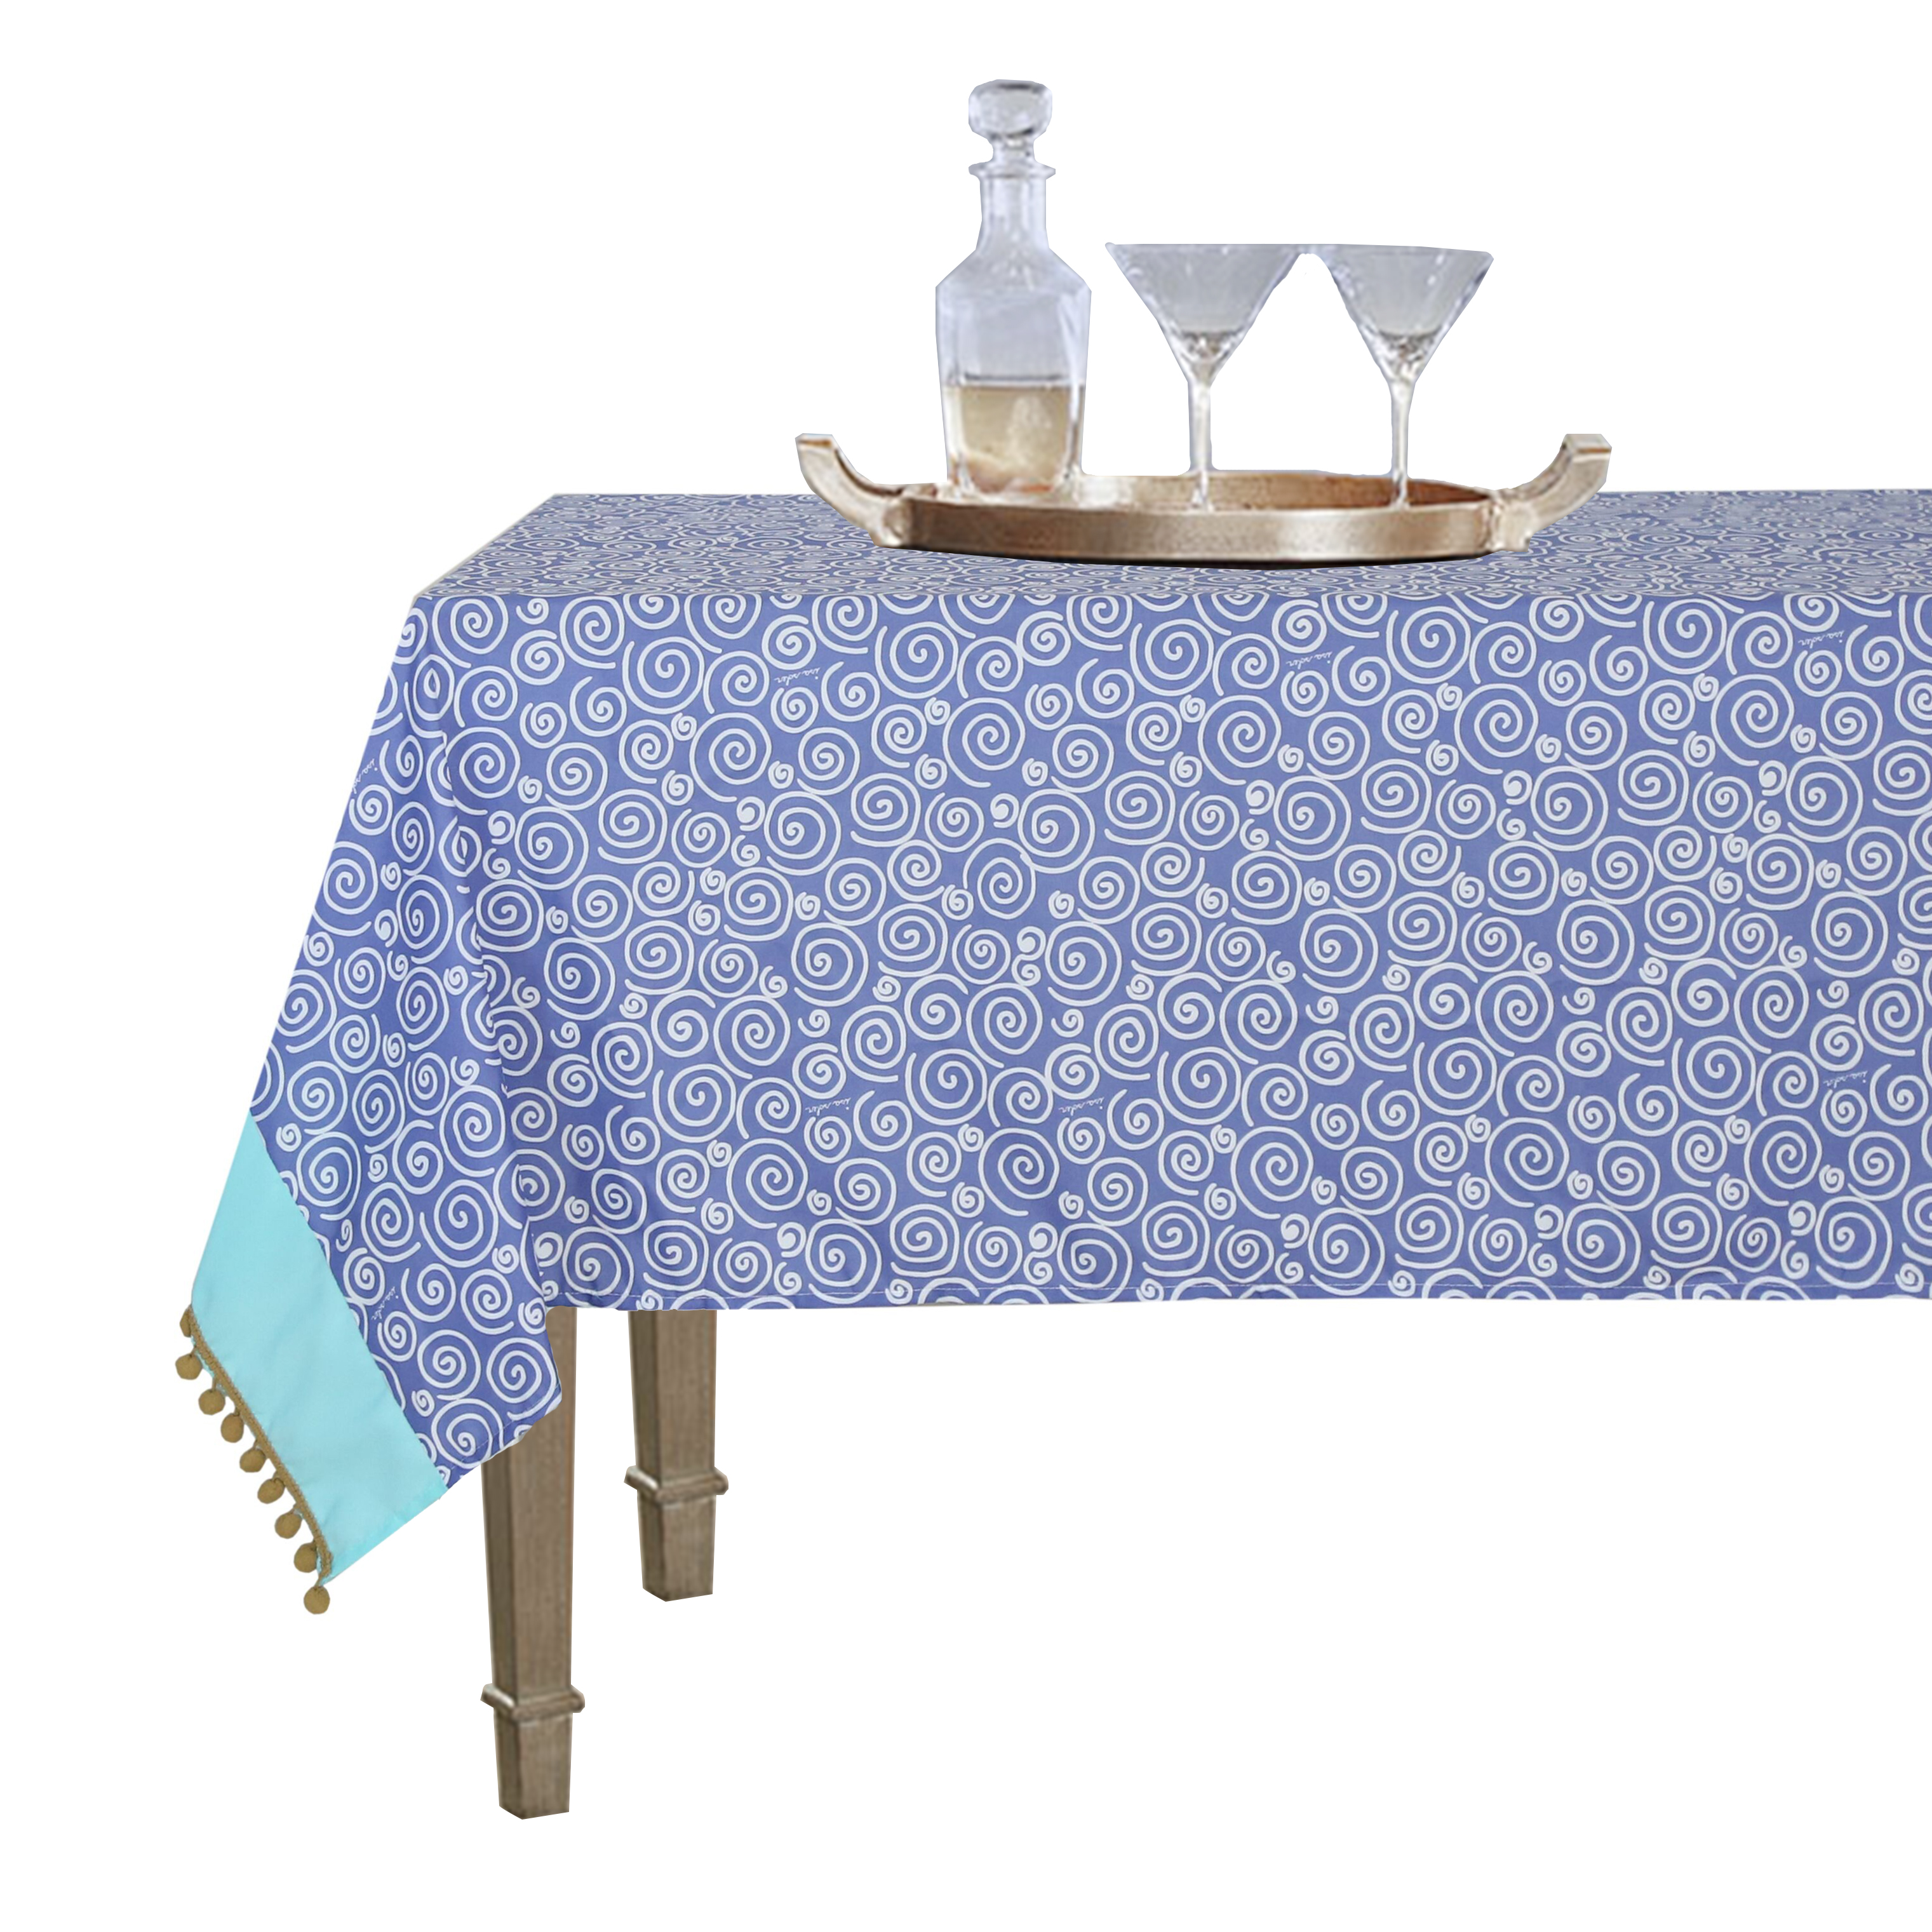 2019 New fancy home popular dining round party decor embroidery table cloth 100 polyester microfiber fabric